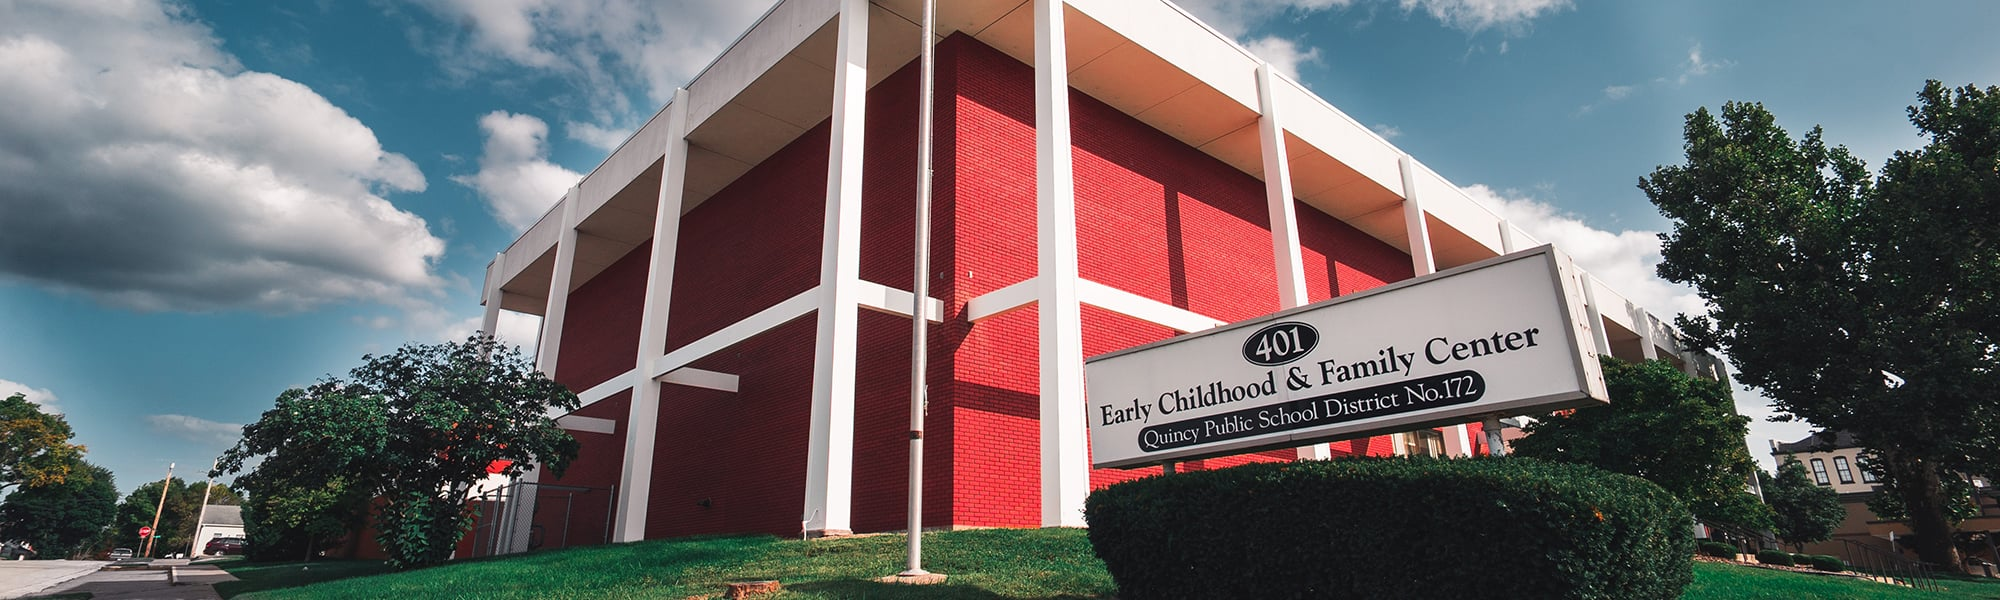 Early Childhood & Family Center - Quincy IL